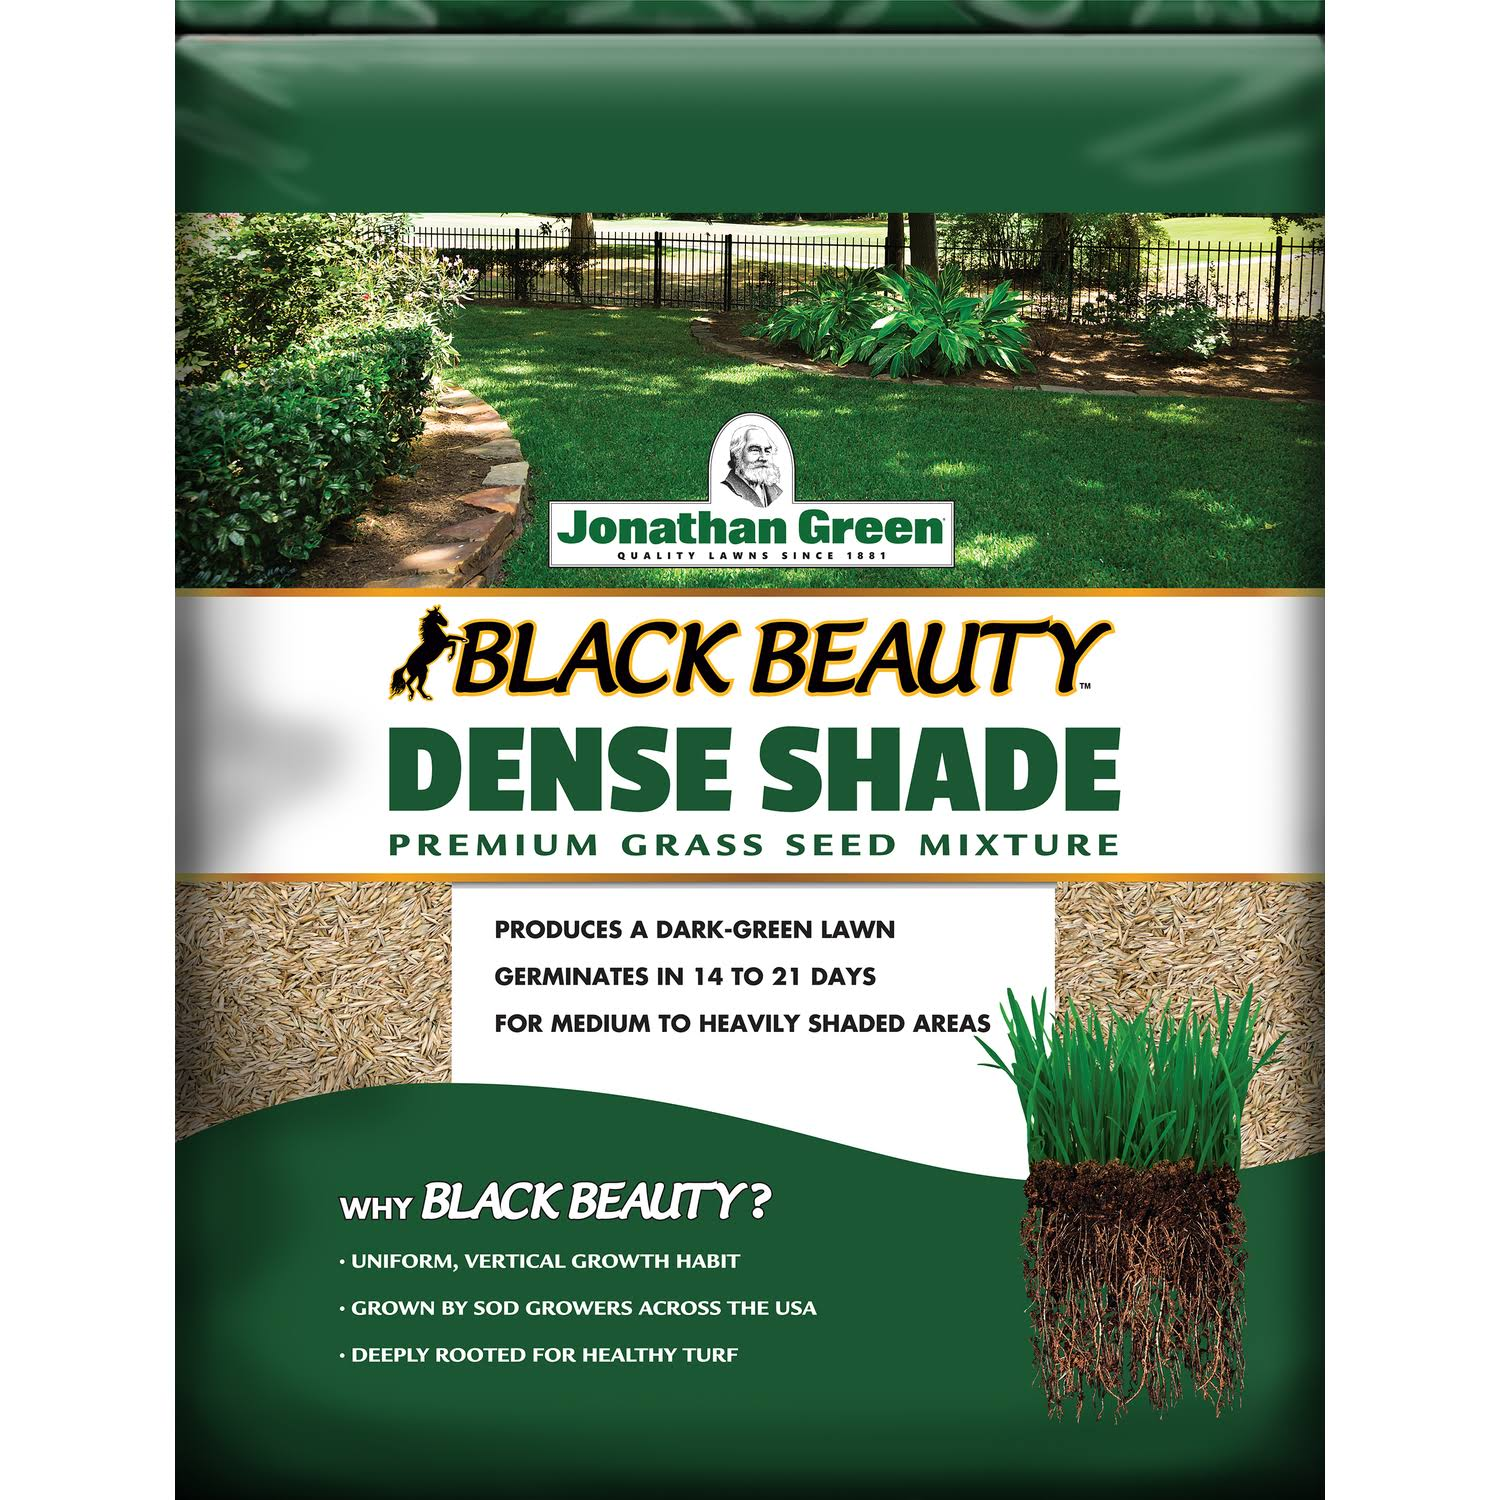 Jonathan Green Dense Shade Grass Seed Mix - 7lbs